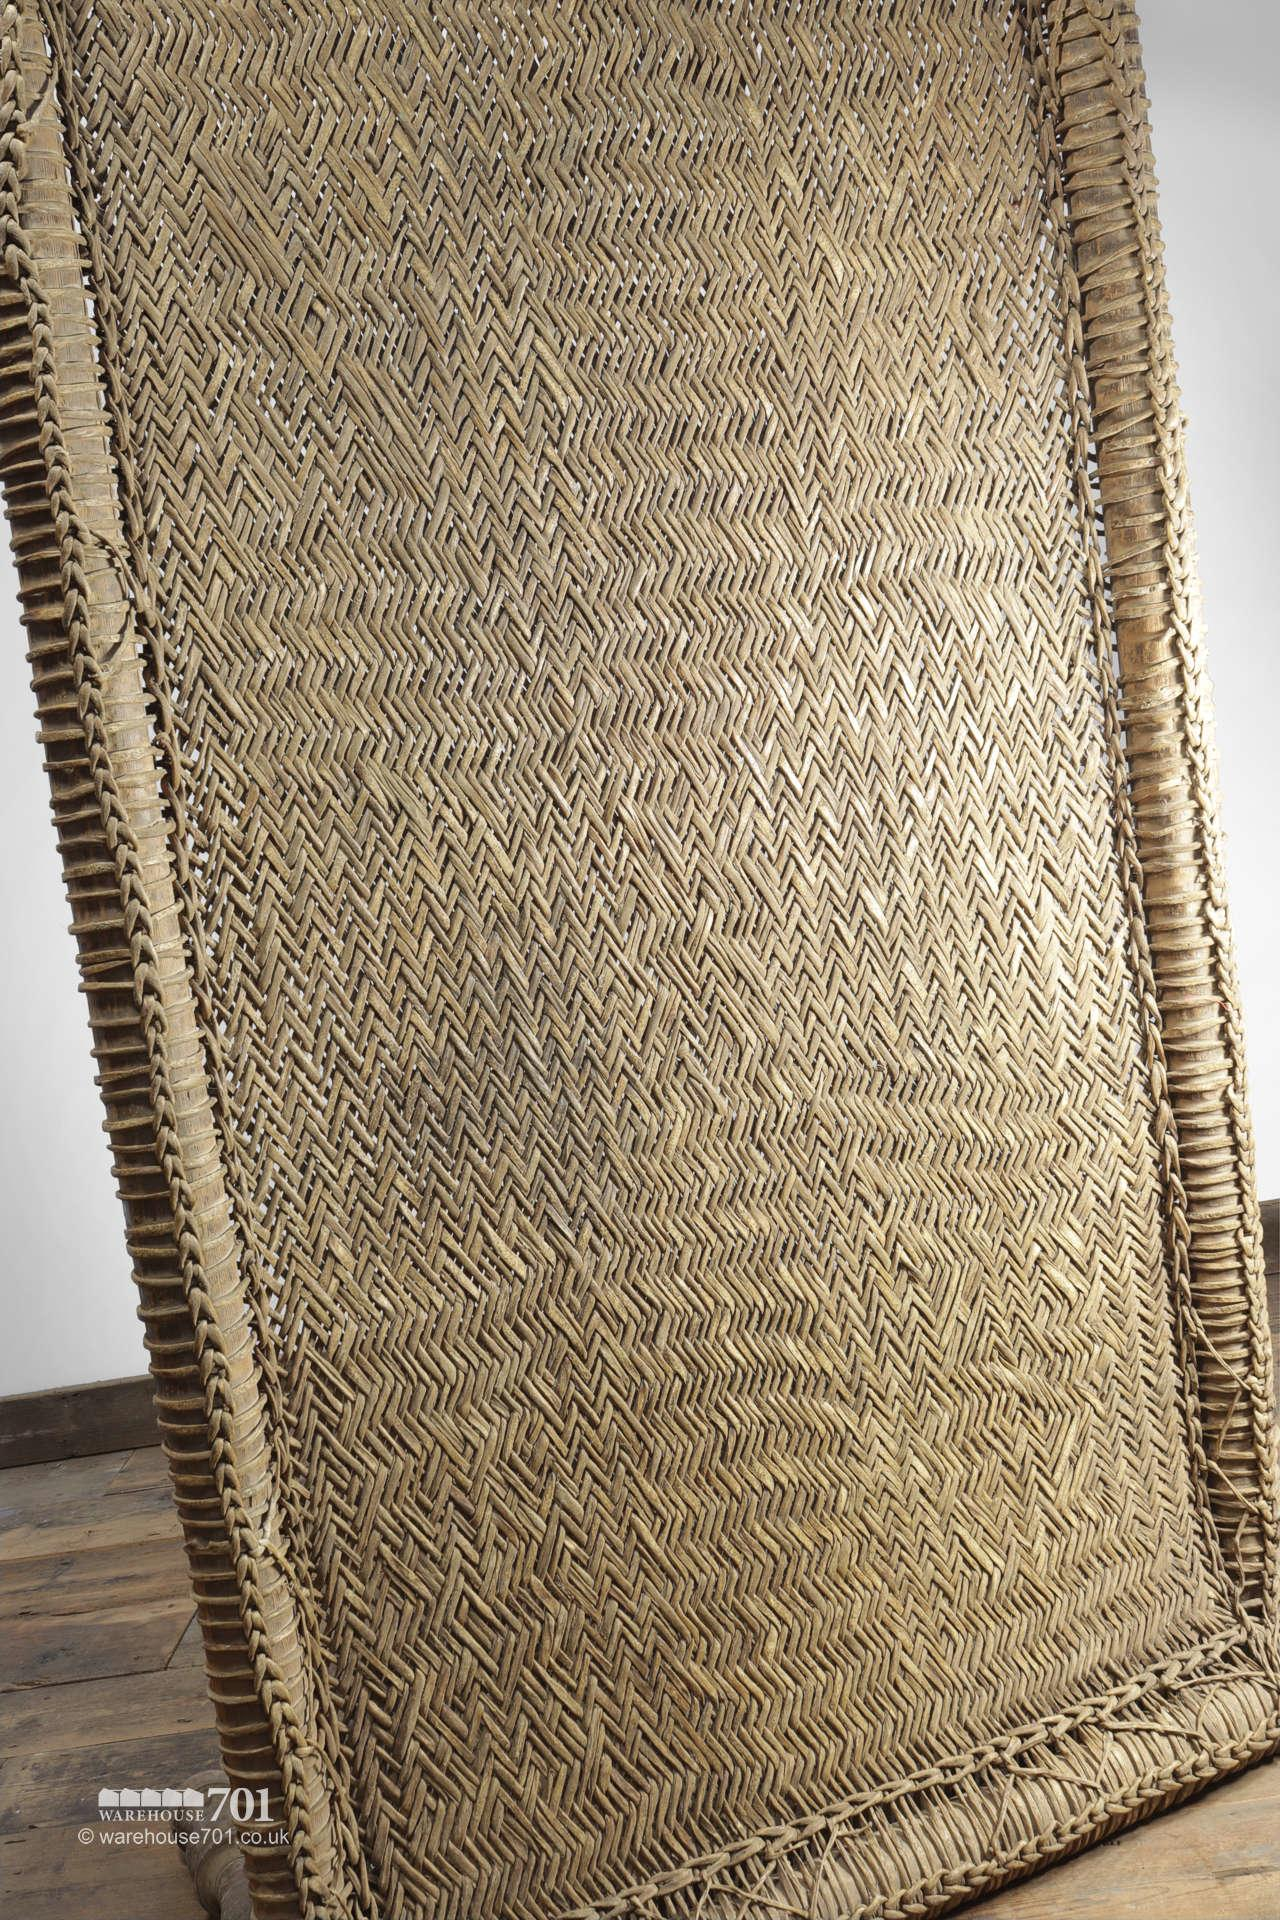 Decorative Wood and Woven Rattan Bed #5